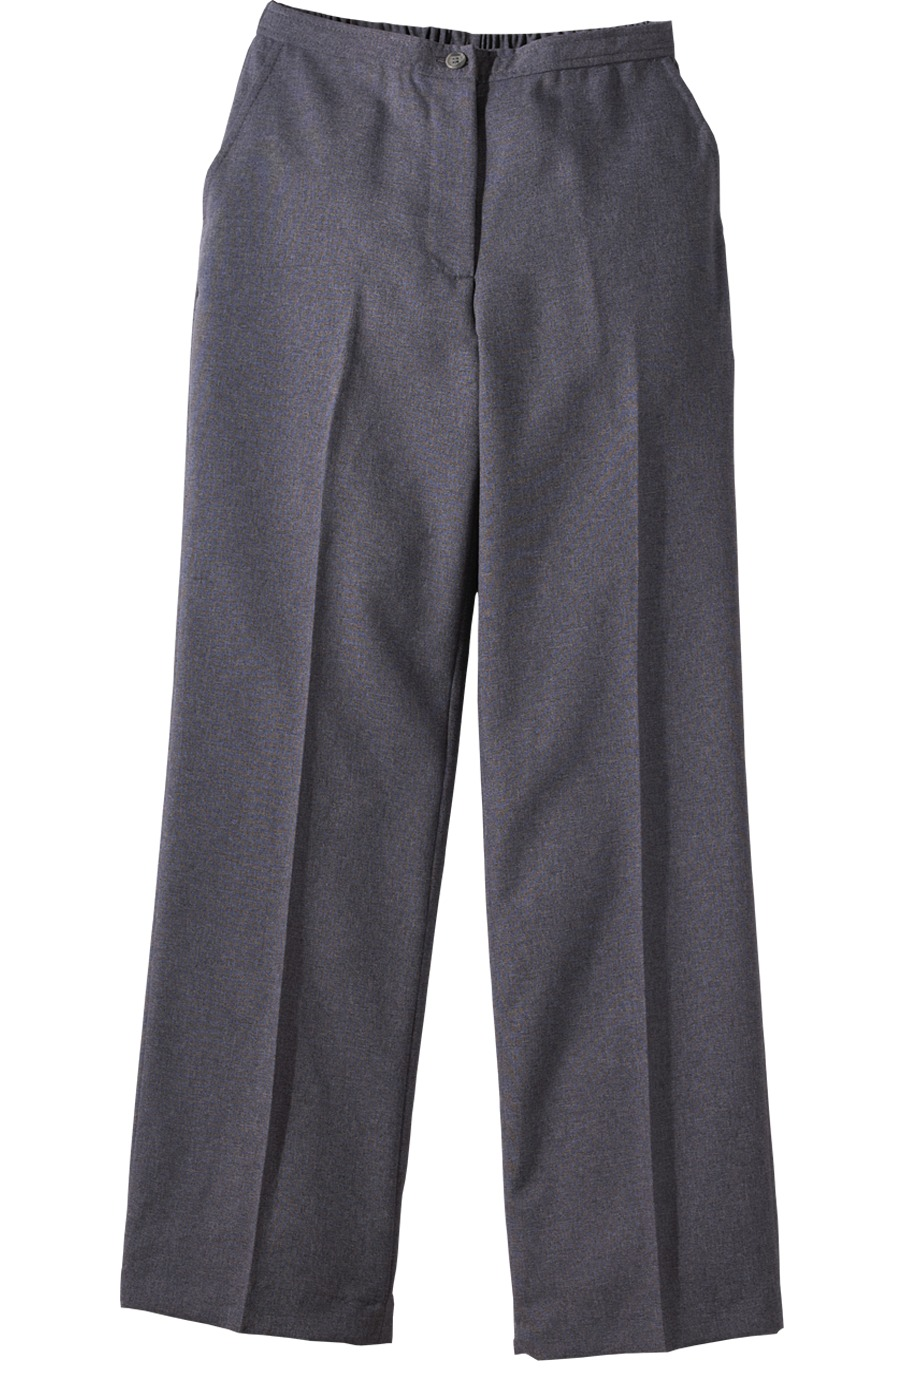 Edwards Garment 8279 - Women's Polyester Flat Front Pant